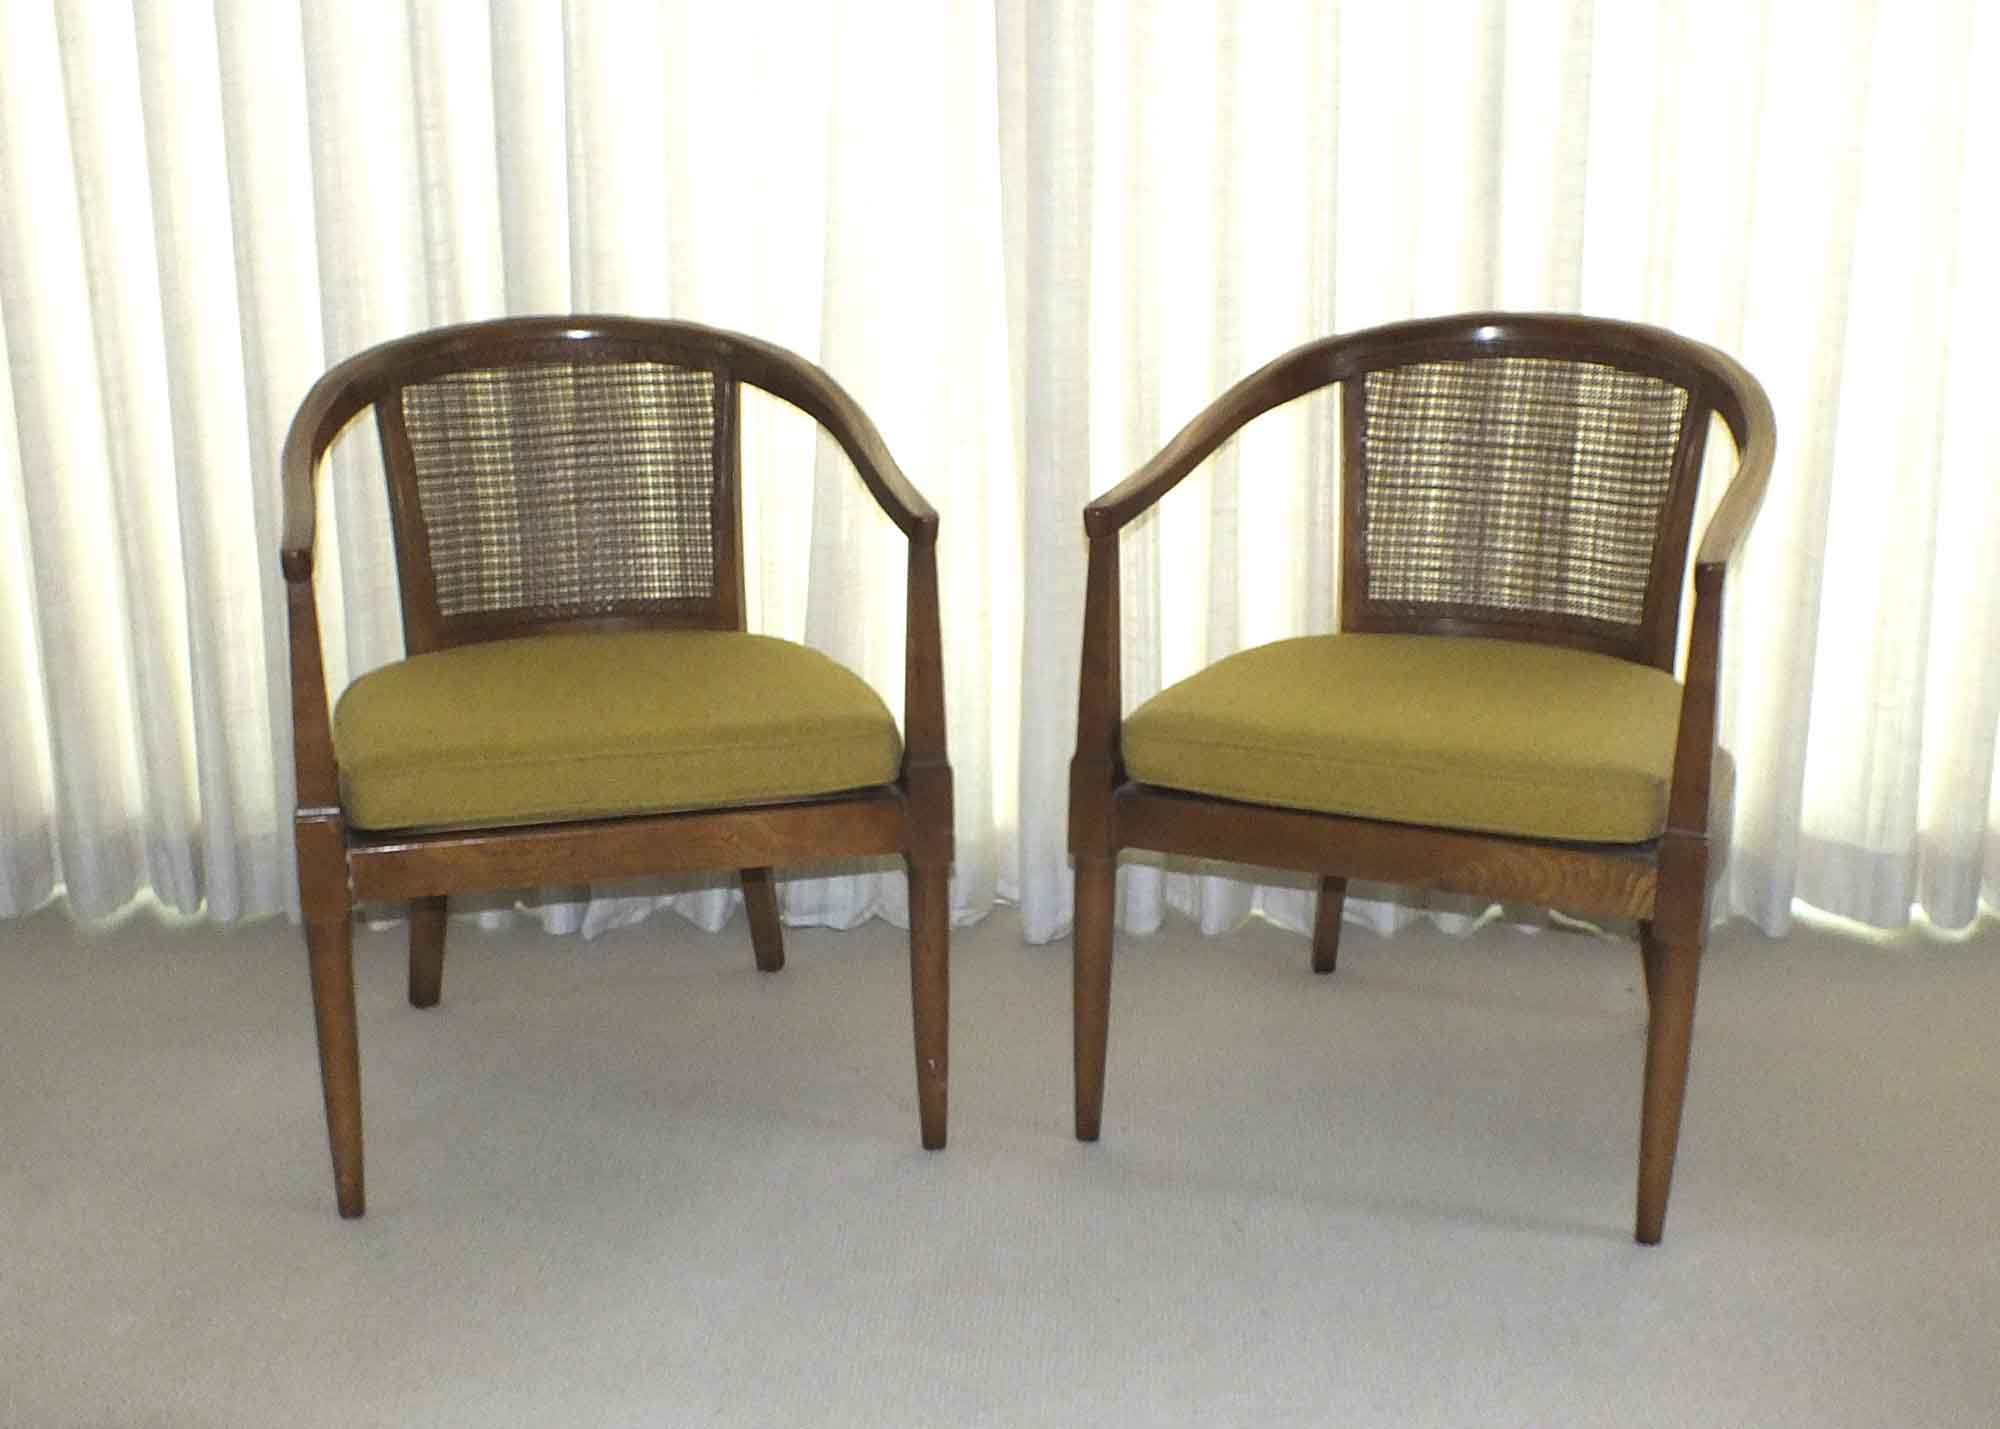 antique cane chairs value Pair of Vintage Cane Back Barrel Chairs : EBTH antique cane chairs value